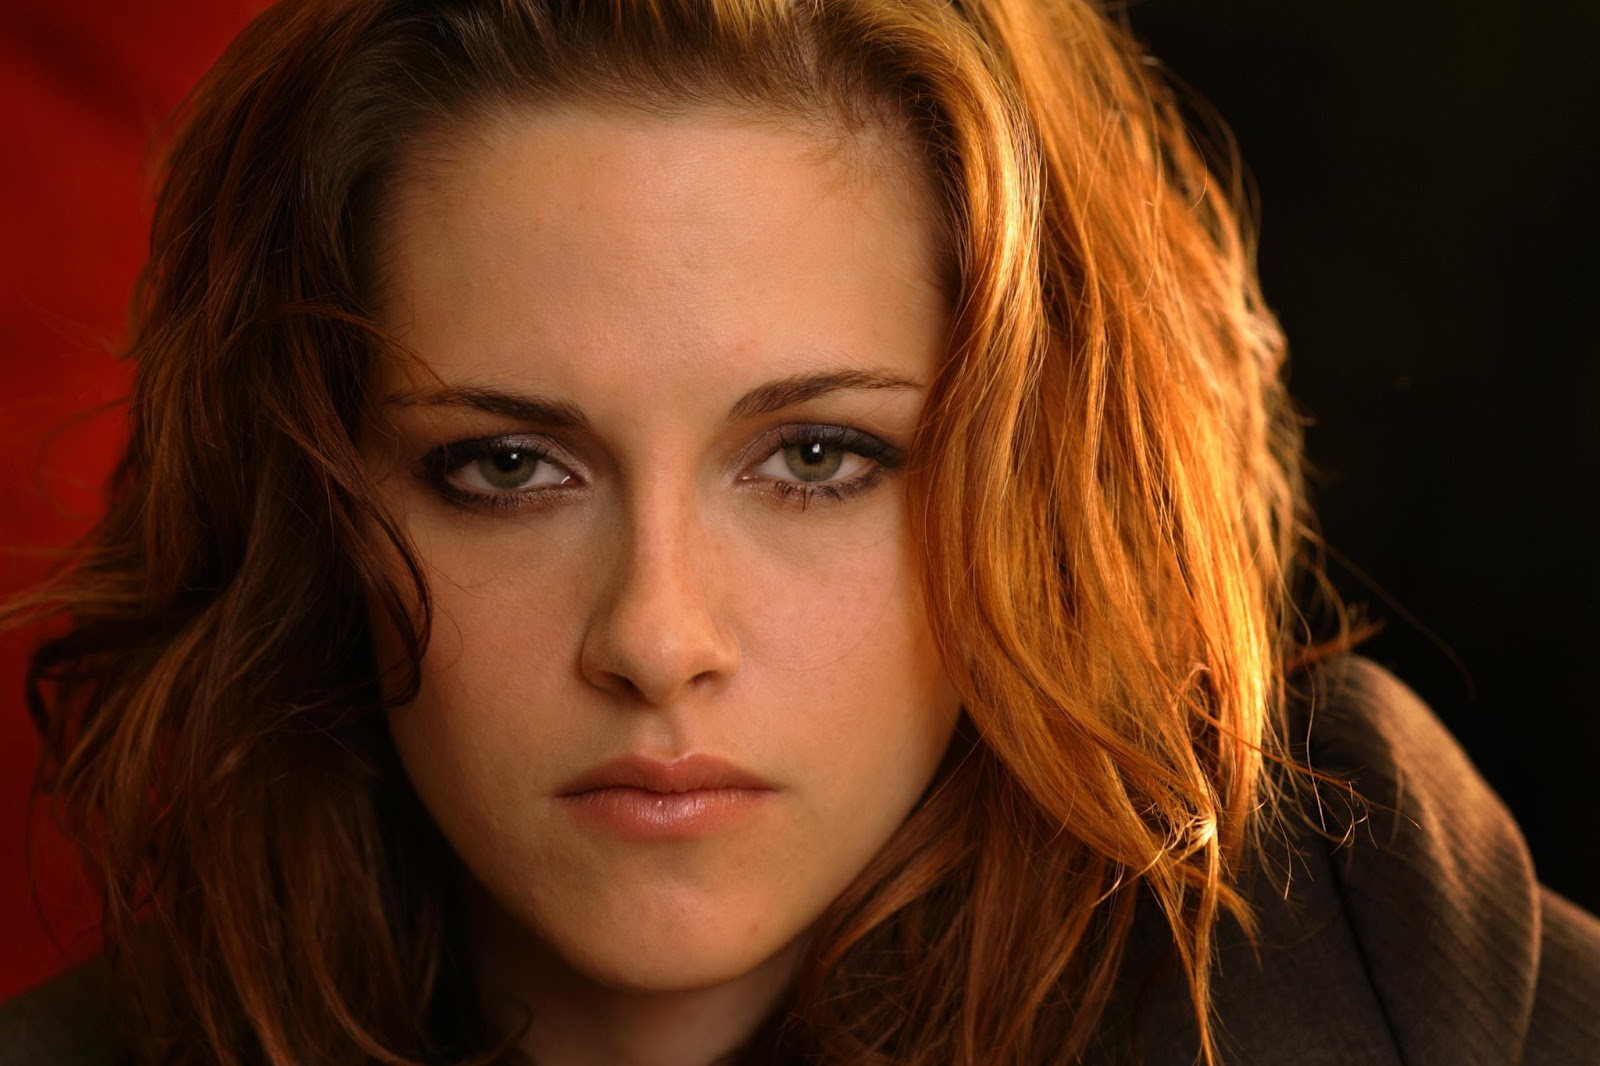 kristen stewart most beautiful eye in the world